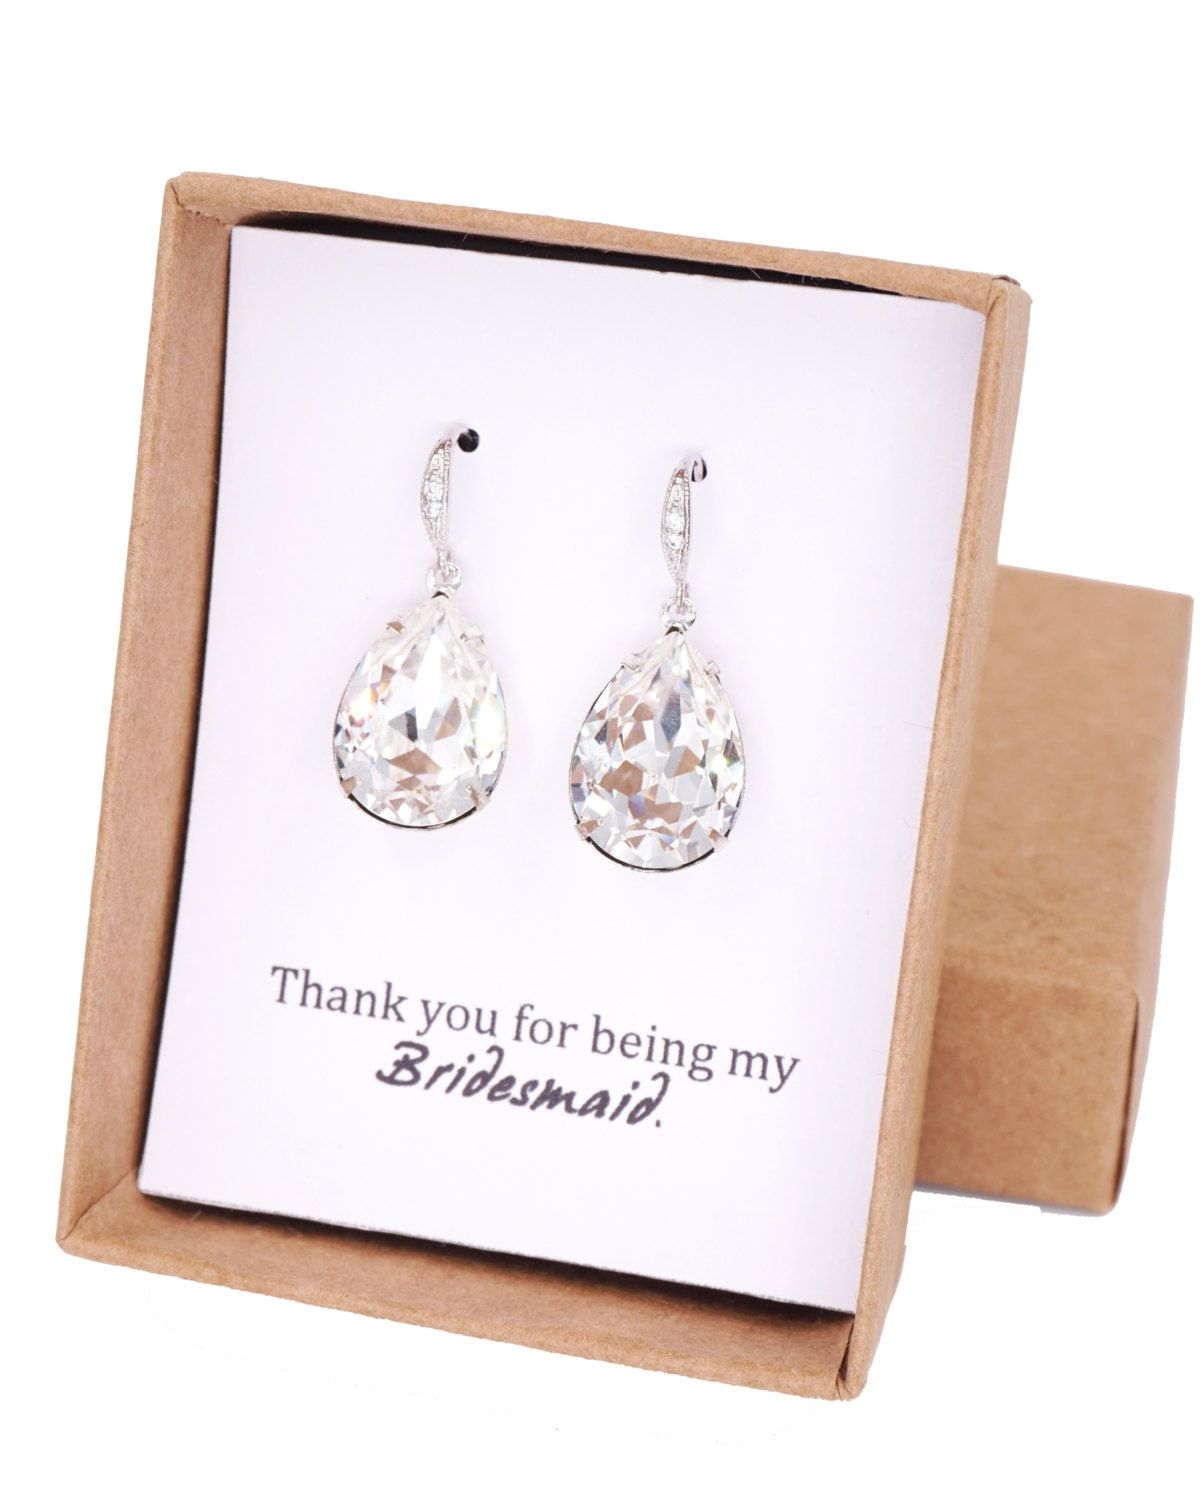 Clear Swarovski Crystal Teardrop (13mm x 18 mm) in sterling silver plated closed back stone settings. Cubic zirconia Teardrop earrings, Luster rhodium plated.  Nickel Free.  ✦ Earrings Length: 1.2 inch  CUSTOM NOTE IN BOX: Please let me know the following at checkout: - Name - Message  ✦ Please